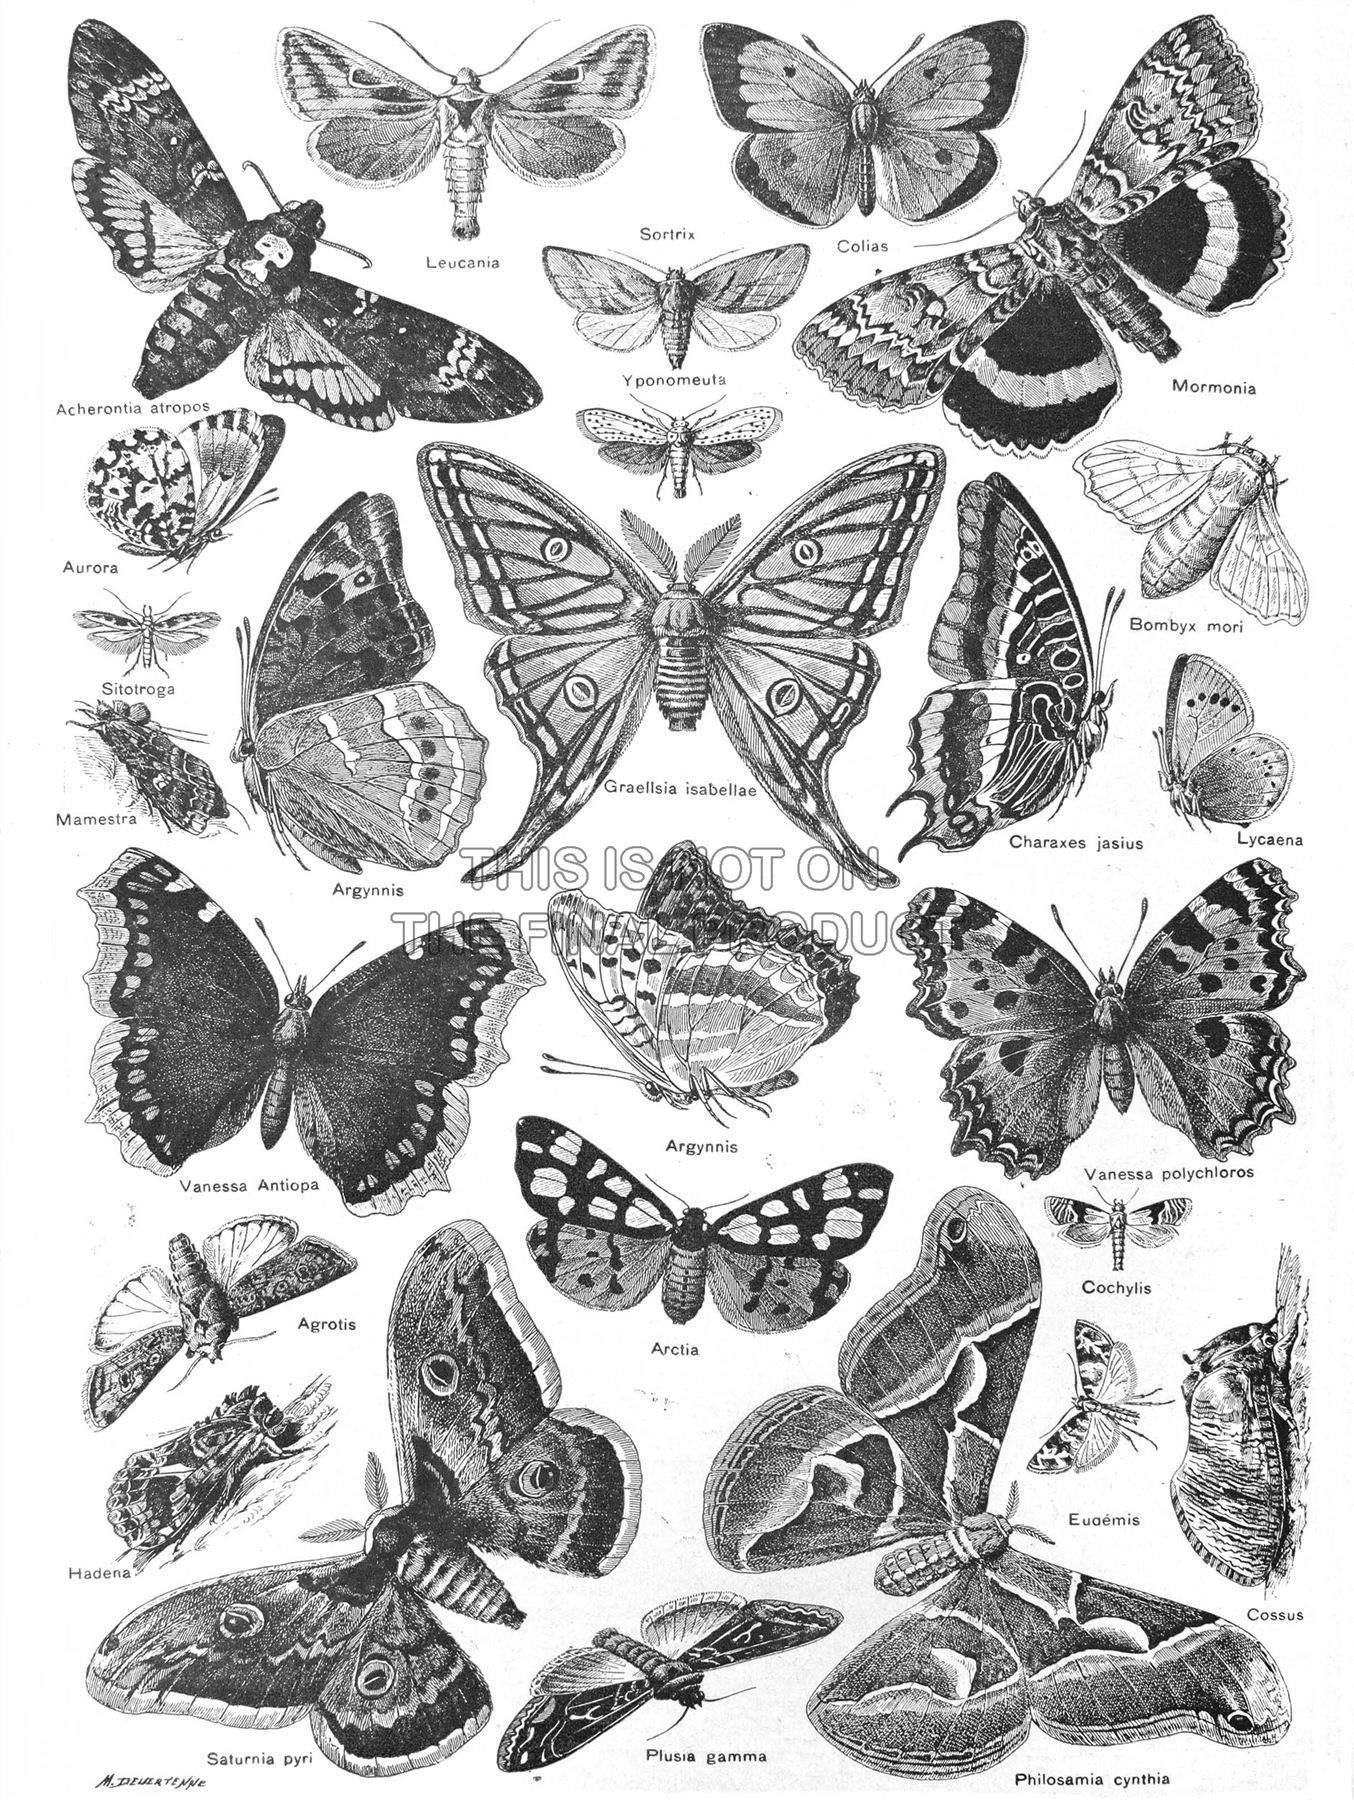 Moth clipart botanical illustration. Scientific butterfly black white